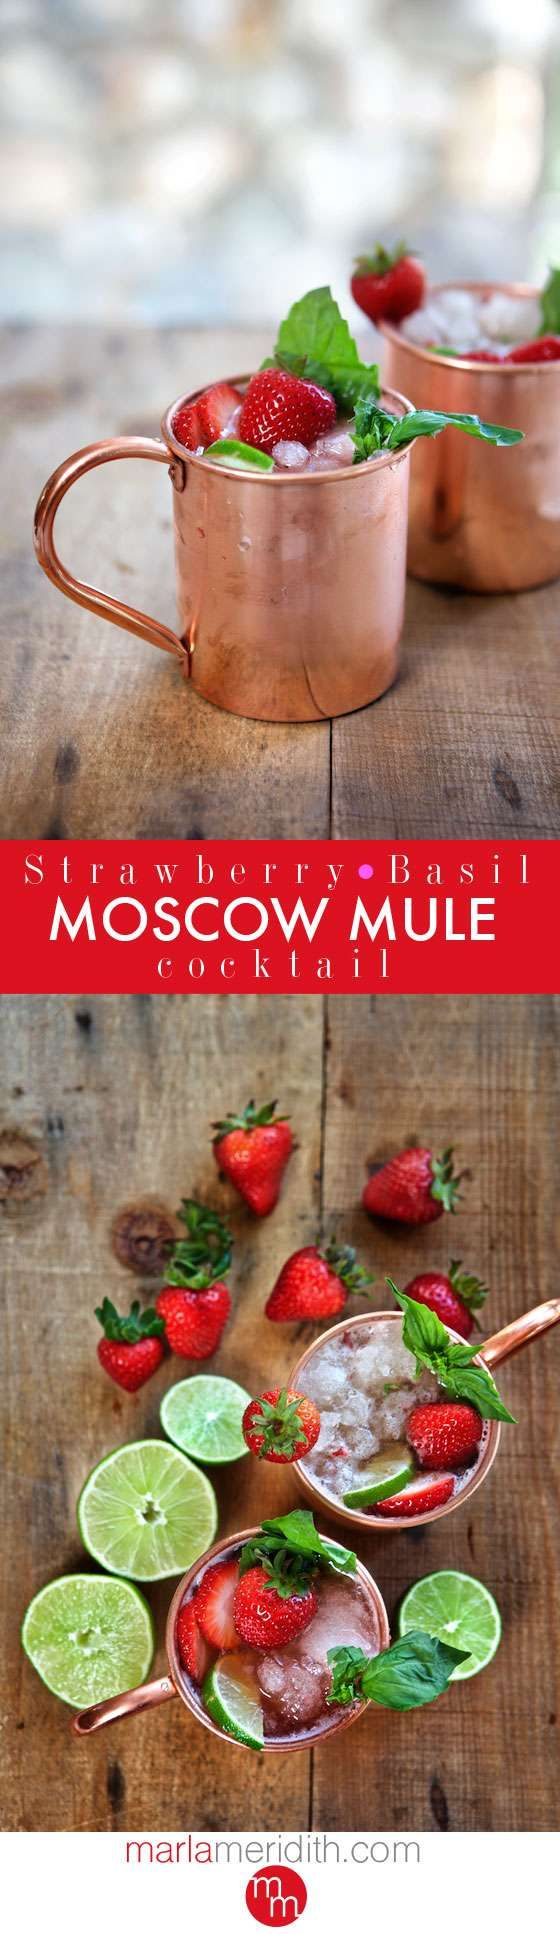 Strawberry Basil Moscow Mule Cocktail - Marla Meridith - MarlaMeridith.com